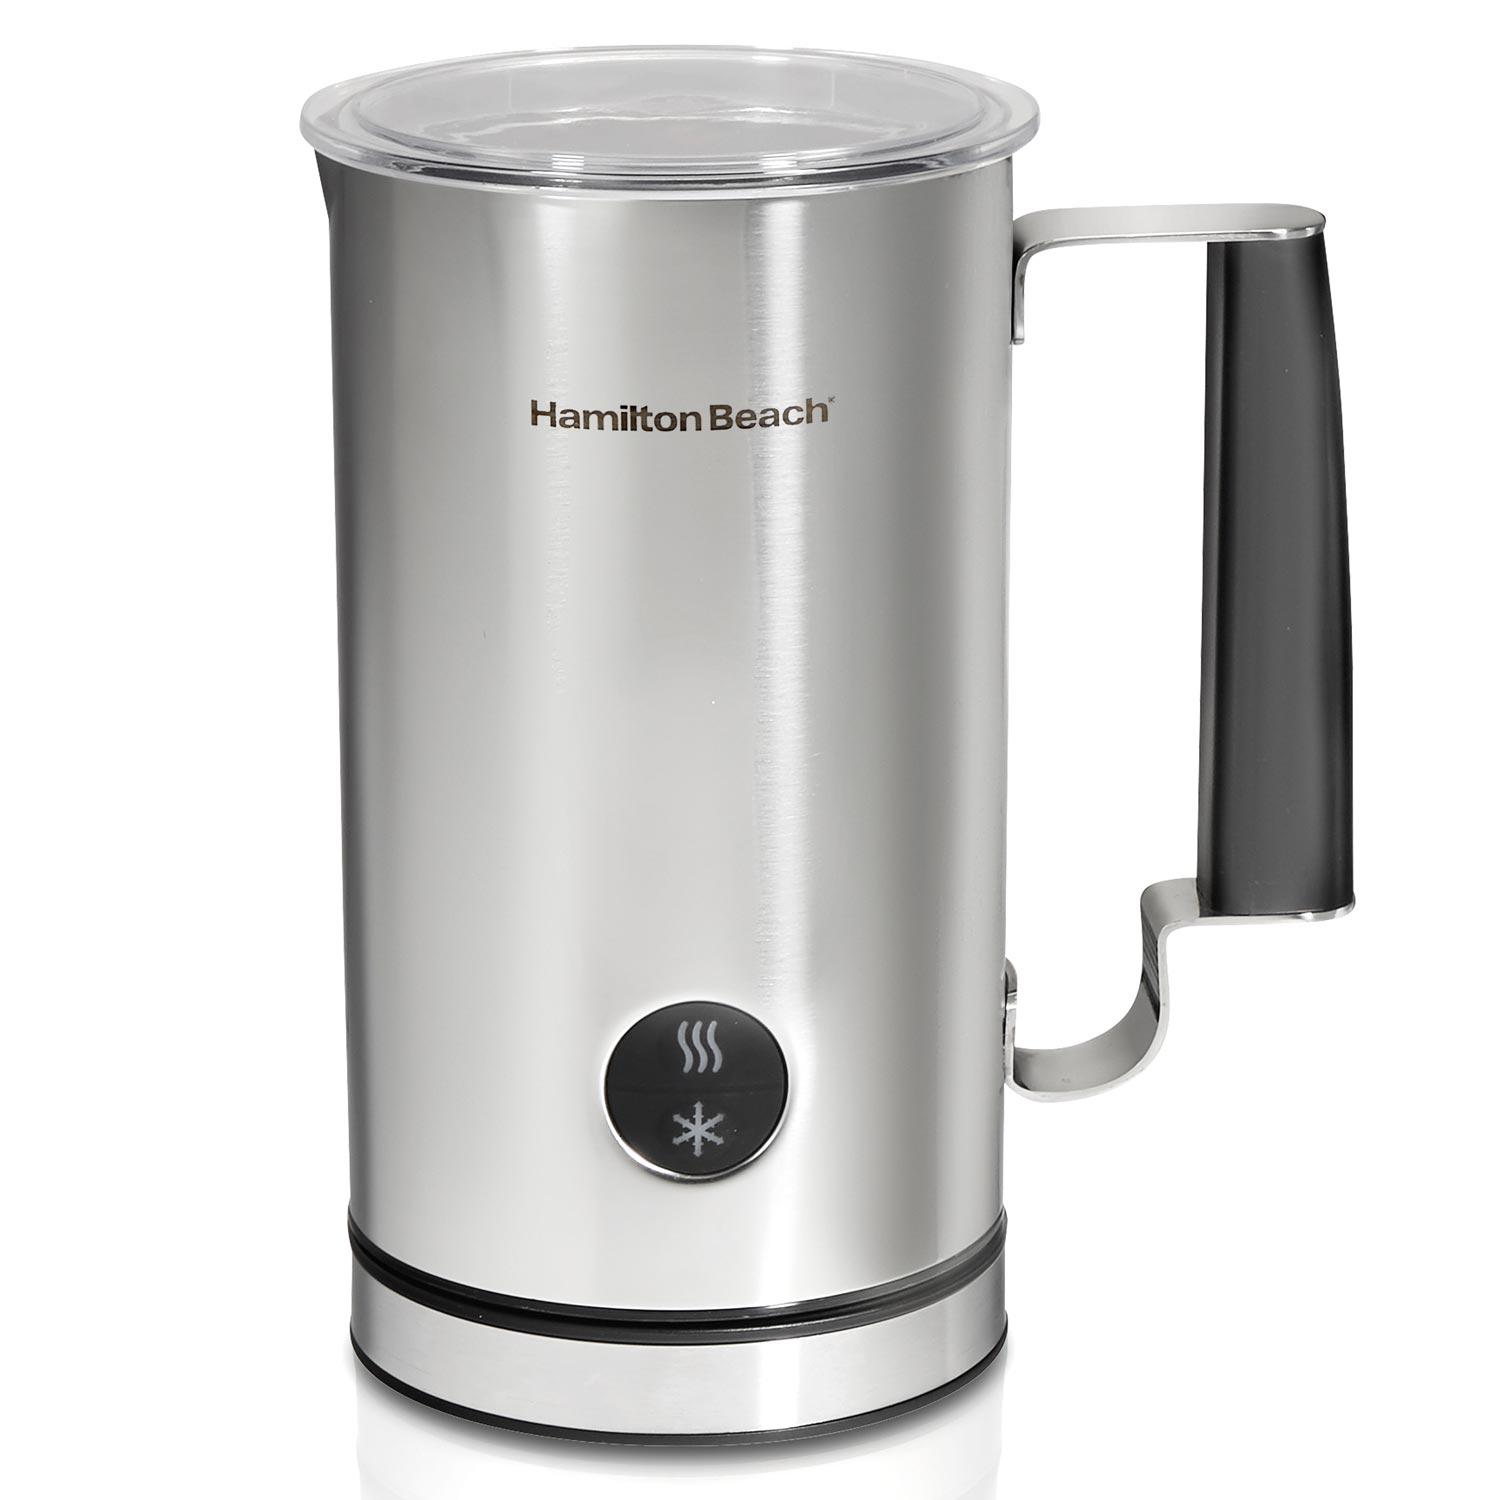 Milk Frother & Warmer (43560)